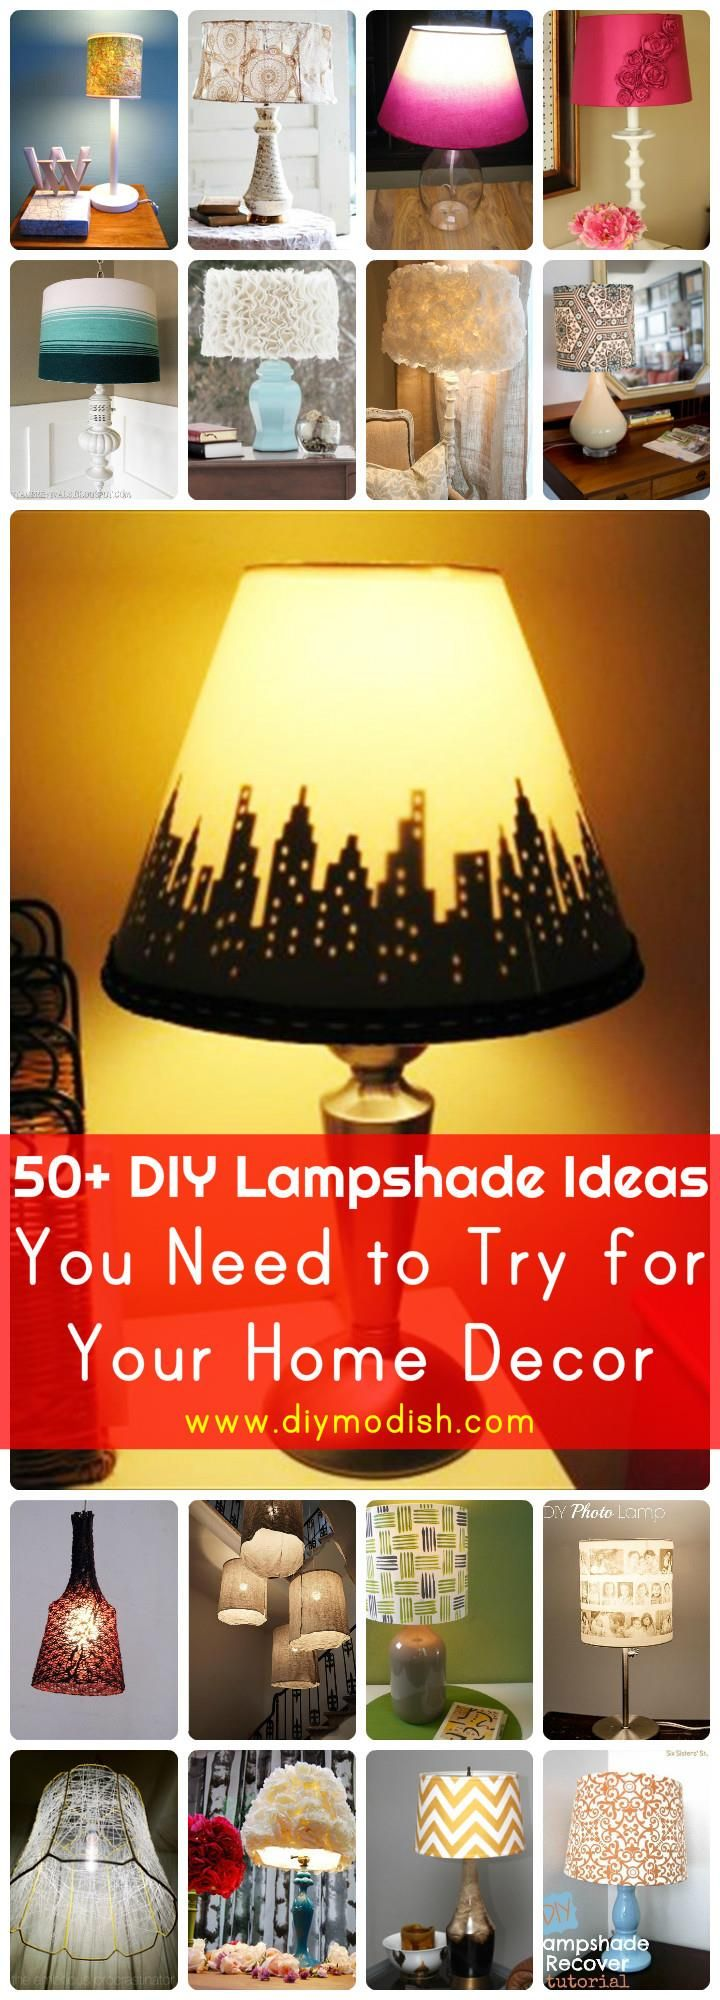 50+ DIY Lampshade Ideas You Need to Try for Your Home Decor - DIY Modish